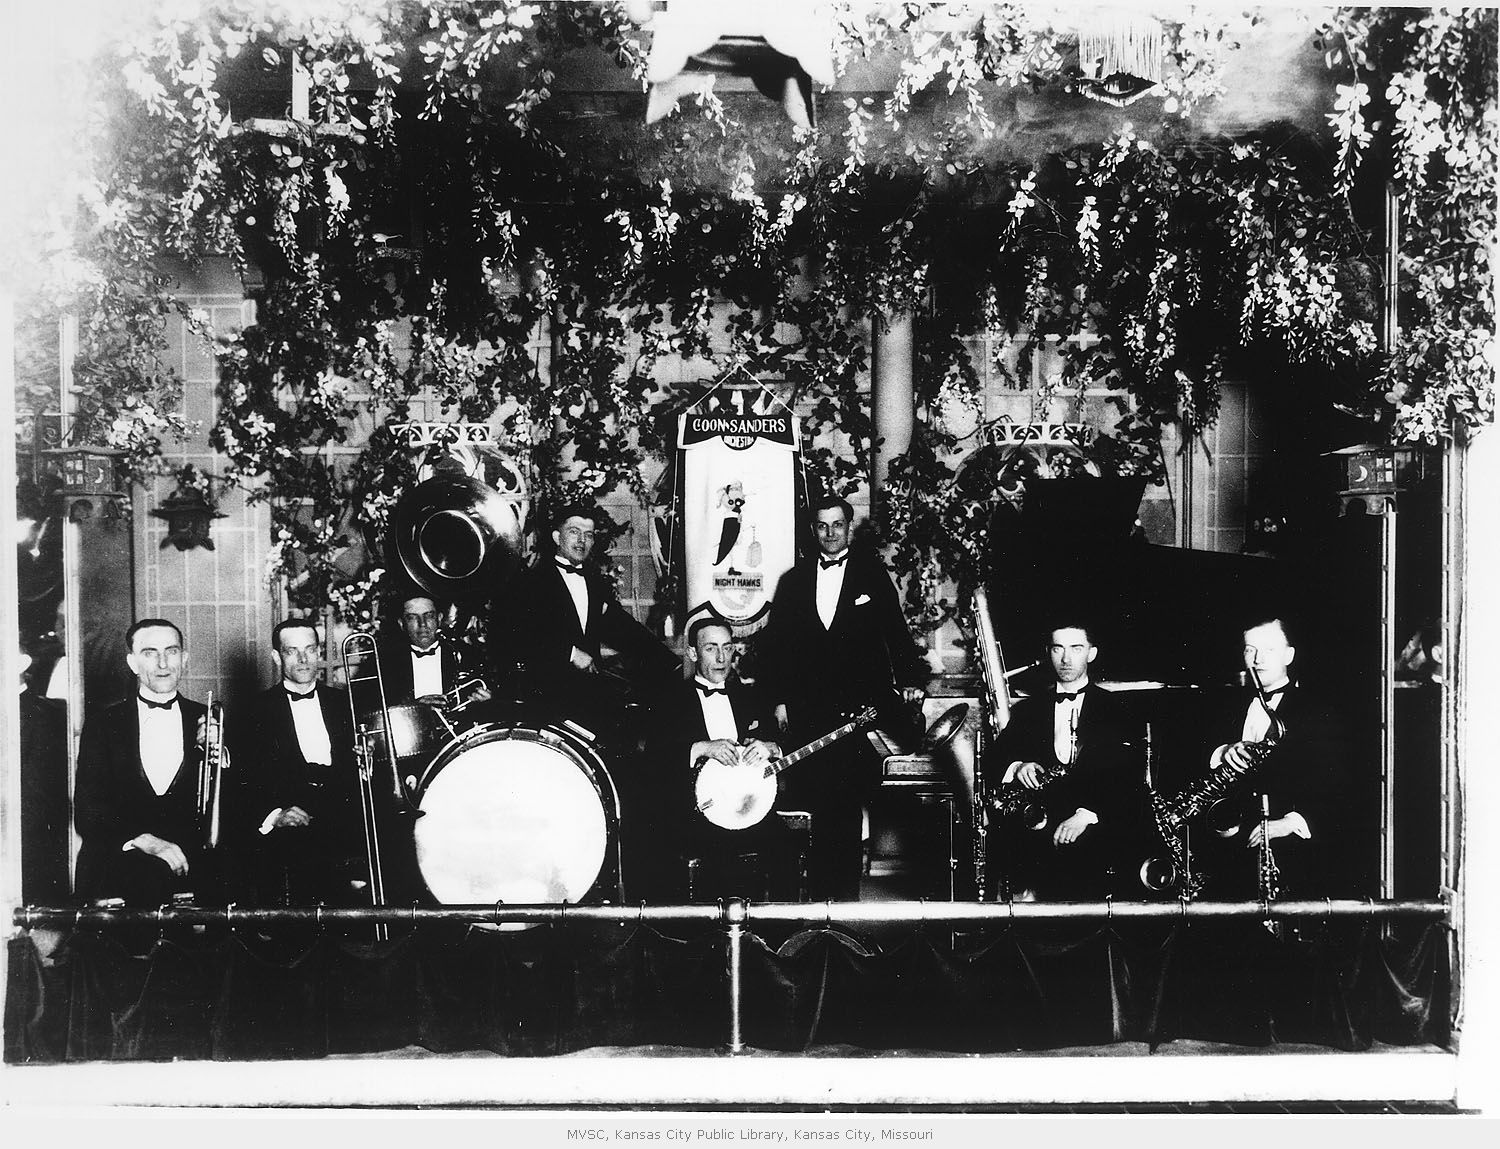 The Coon-Sanders Nighthawk Orchestra, led by Carleton Coon and Joe Sanders, gave the first band performance to be broadcast over radio in 1922. Image courtesy of the Missouri Valley Special Collections.